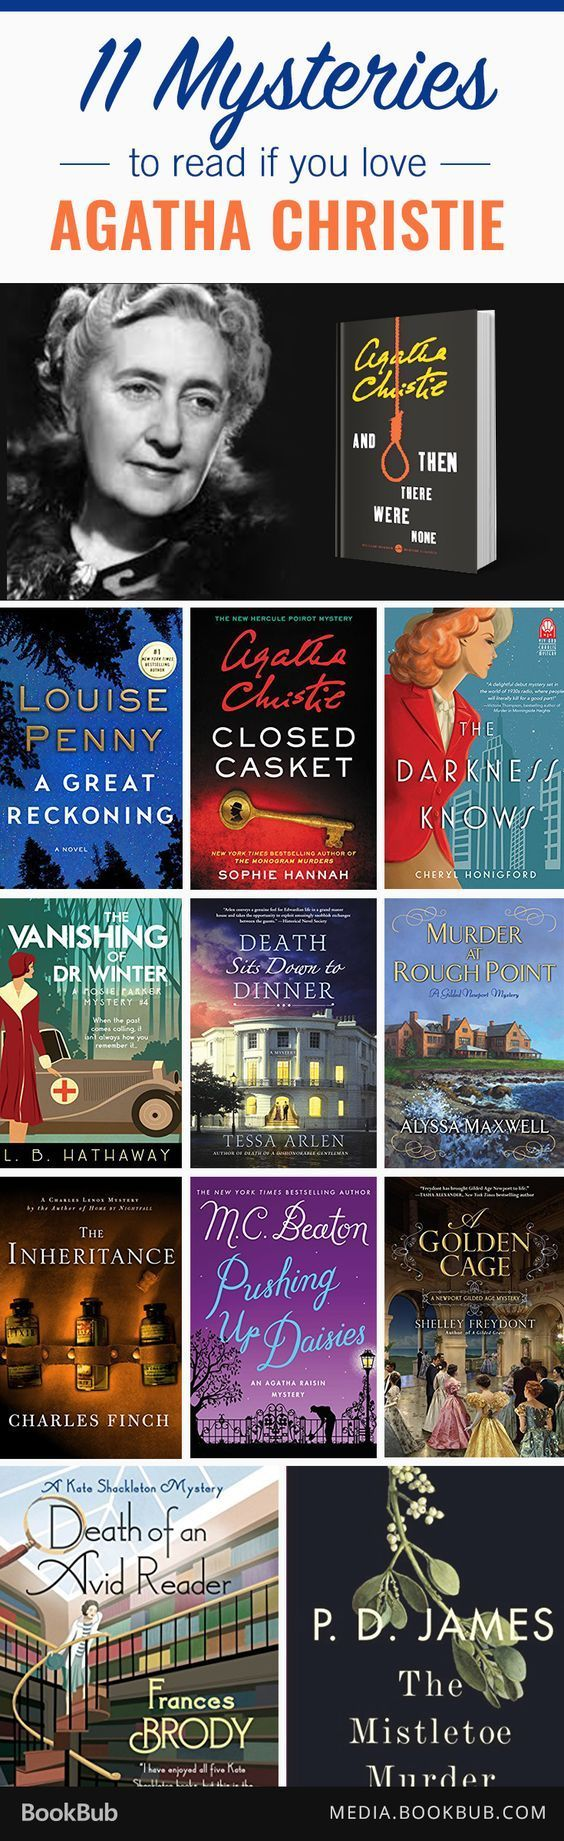 22 best million dollar mary images on pinterest communication hay 11 mysteries to read if you love agatha christie fandeluxe Choice Image